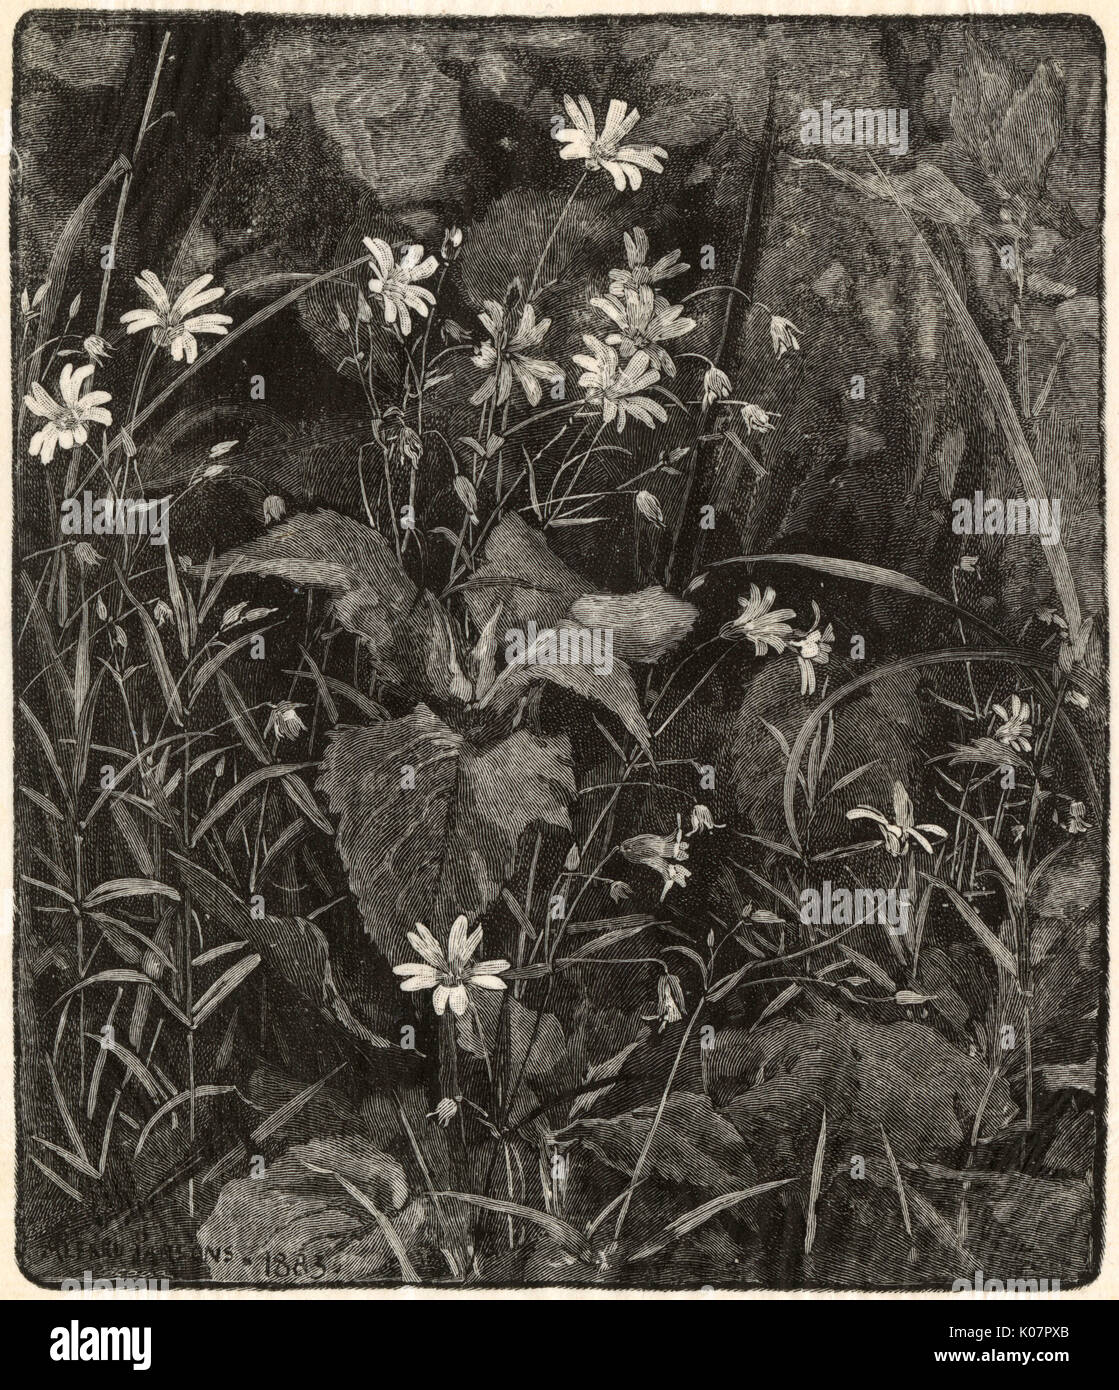 'Stitchwort 'by Alfred Parsons (1847-1920), engraved by Octave Lacour (1855-1921).     Date: 1884 - Stock Image